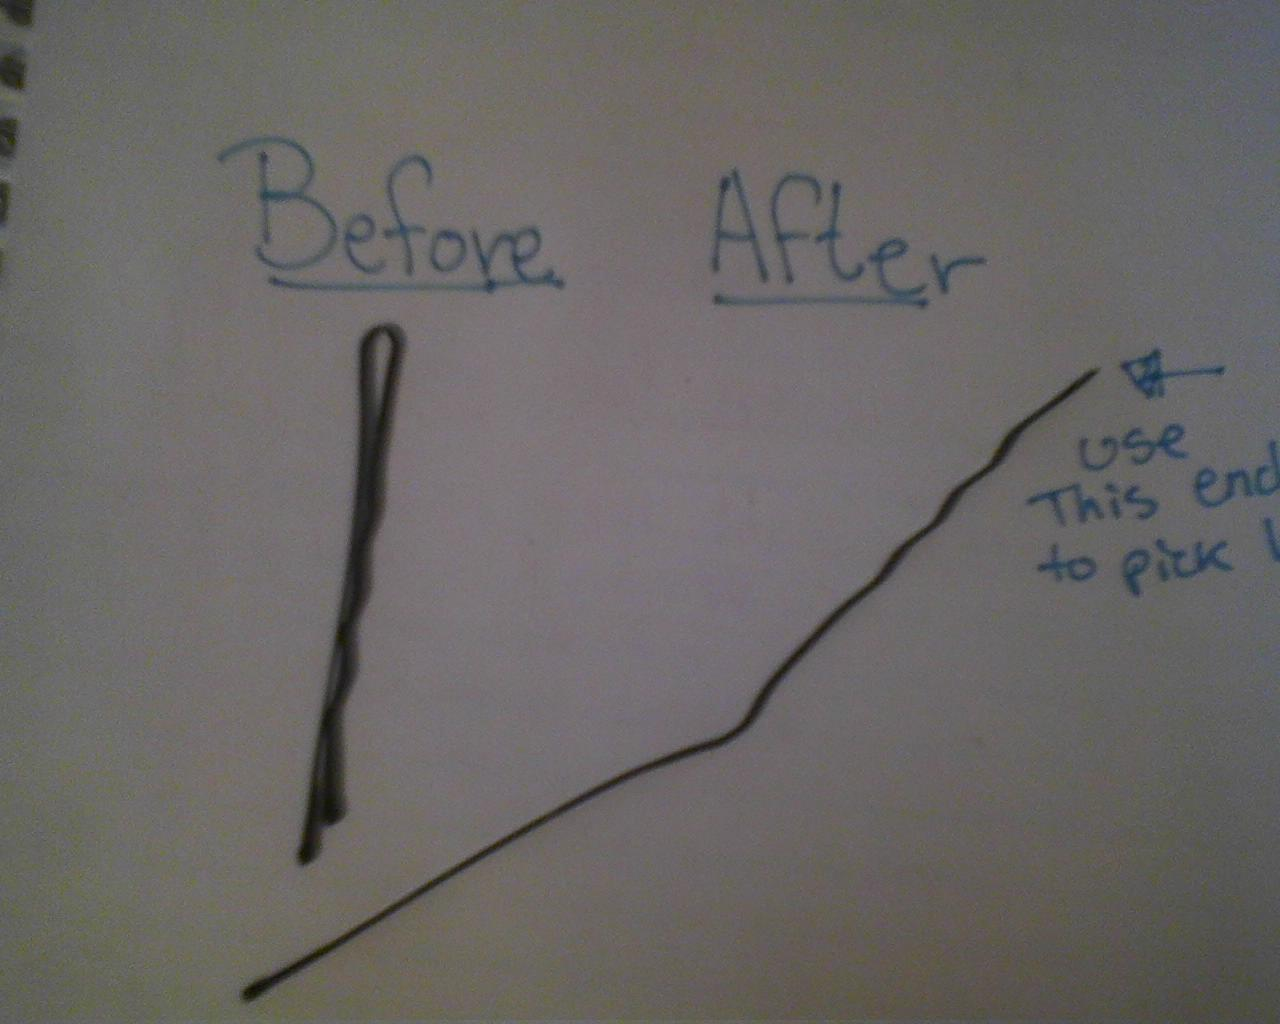 The before and after picture in creating a common lock picking tool